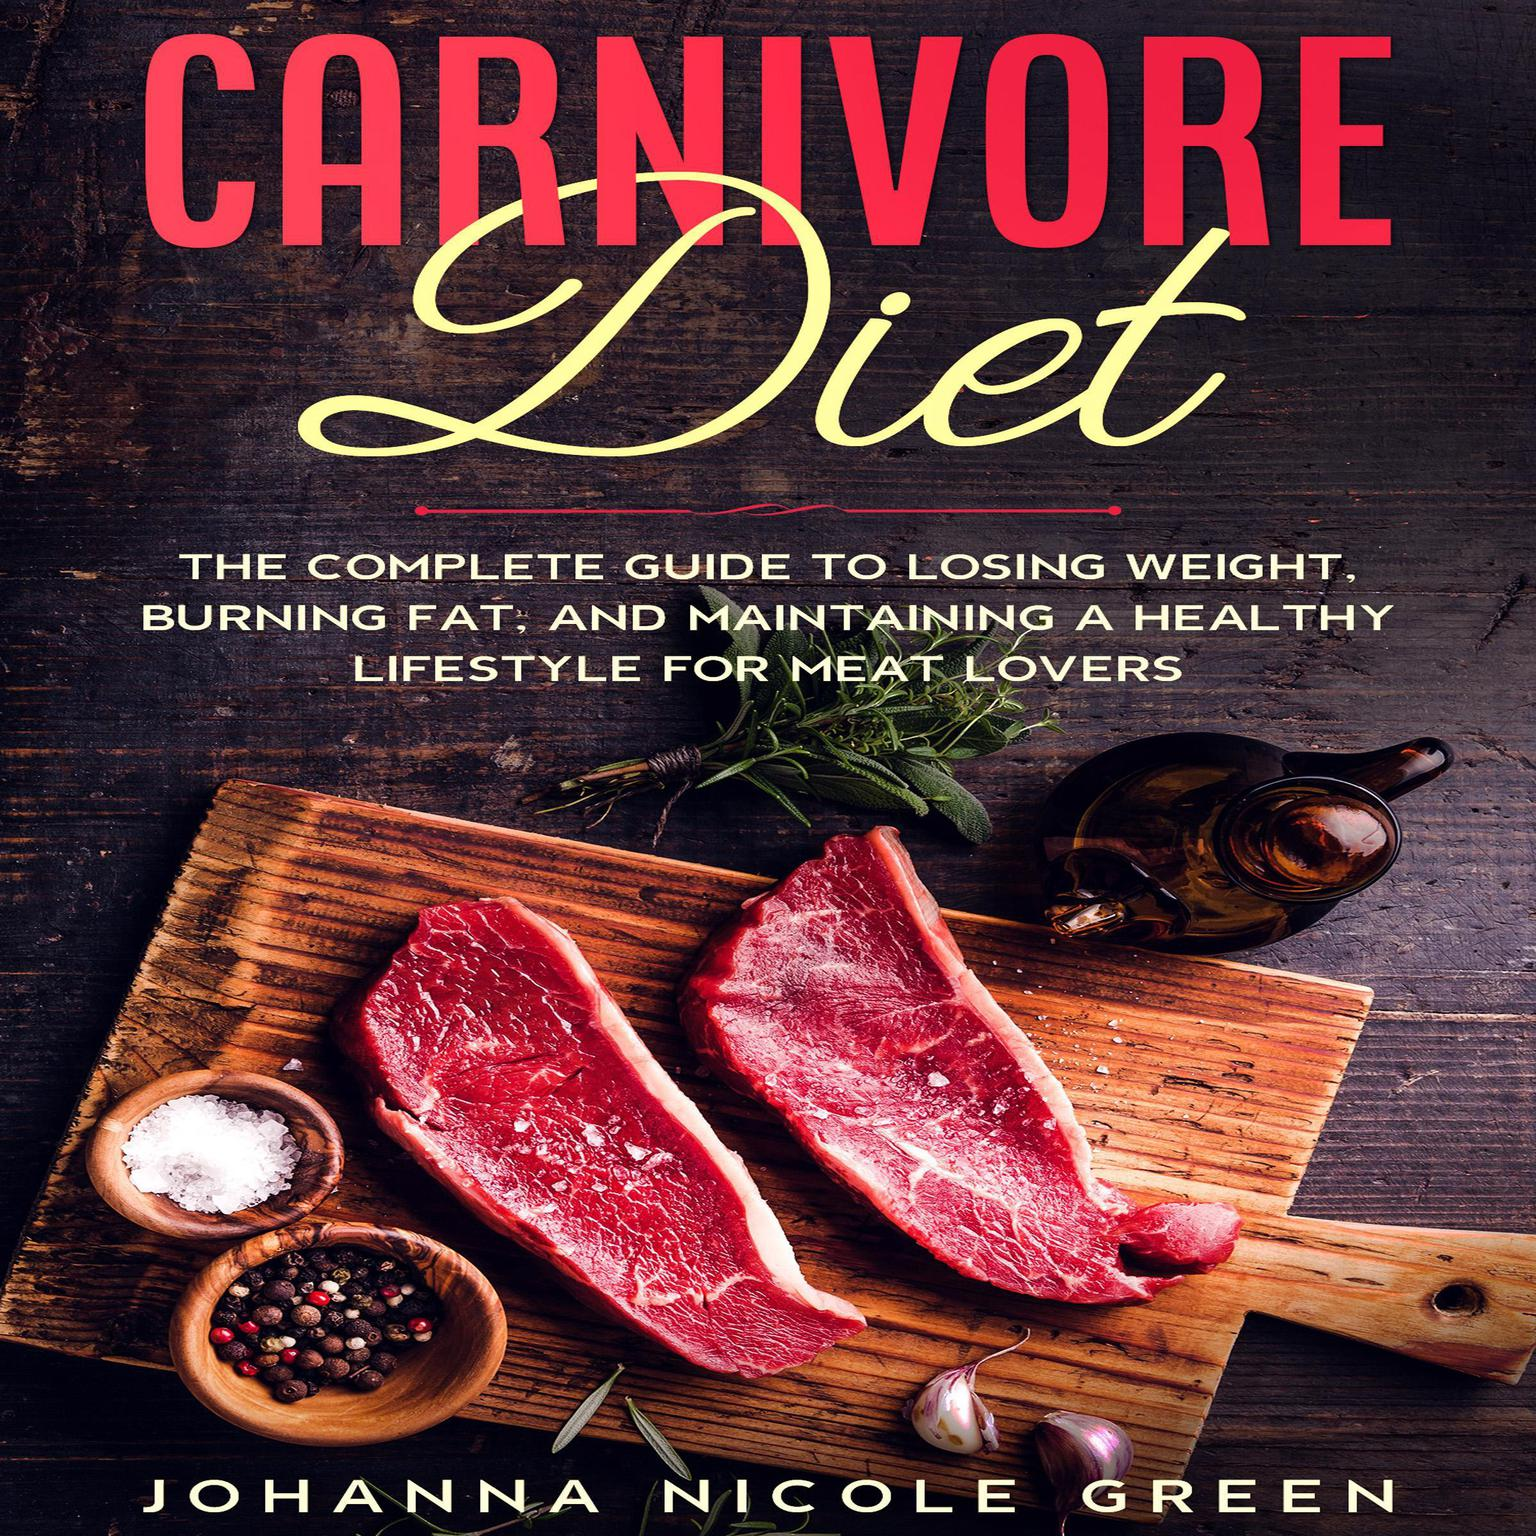 Carnivore Diet: The Complete Guide to Losing Weight, Burning Fat, and Maintaining a Healthy Lifestyle for Meat Lovers Audiobook, by Johanna Nicole Green